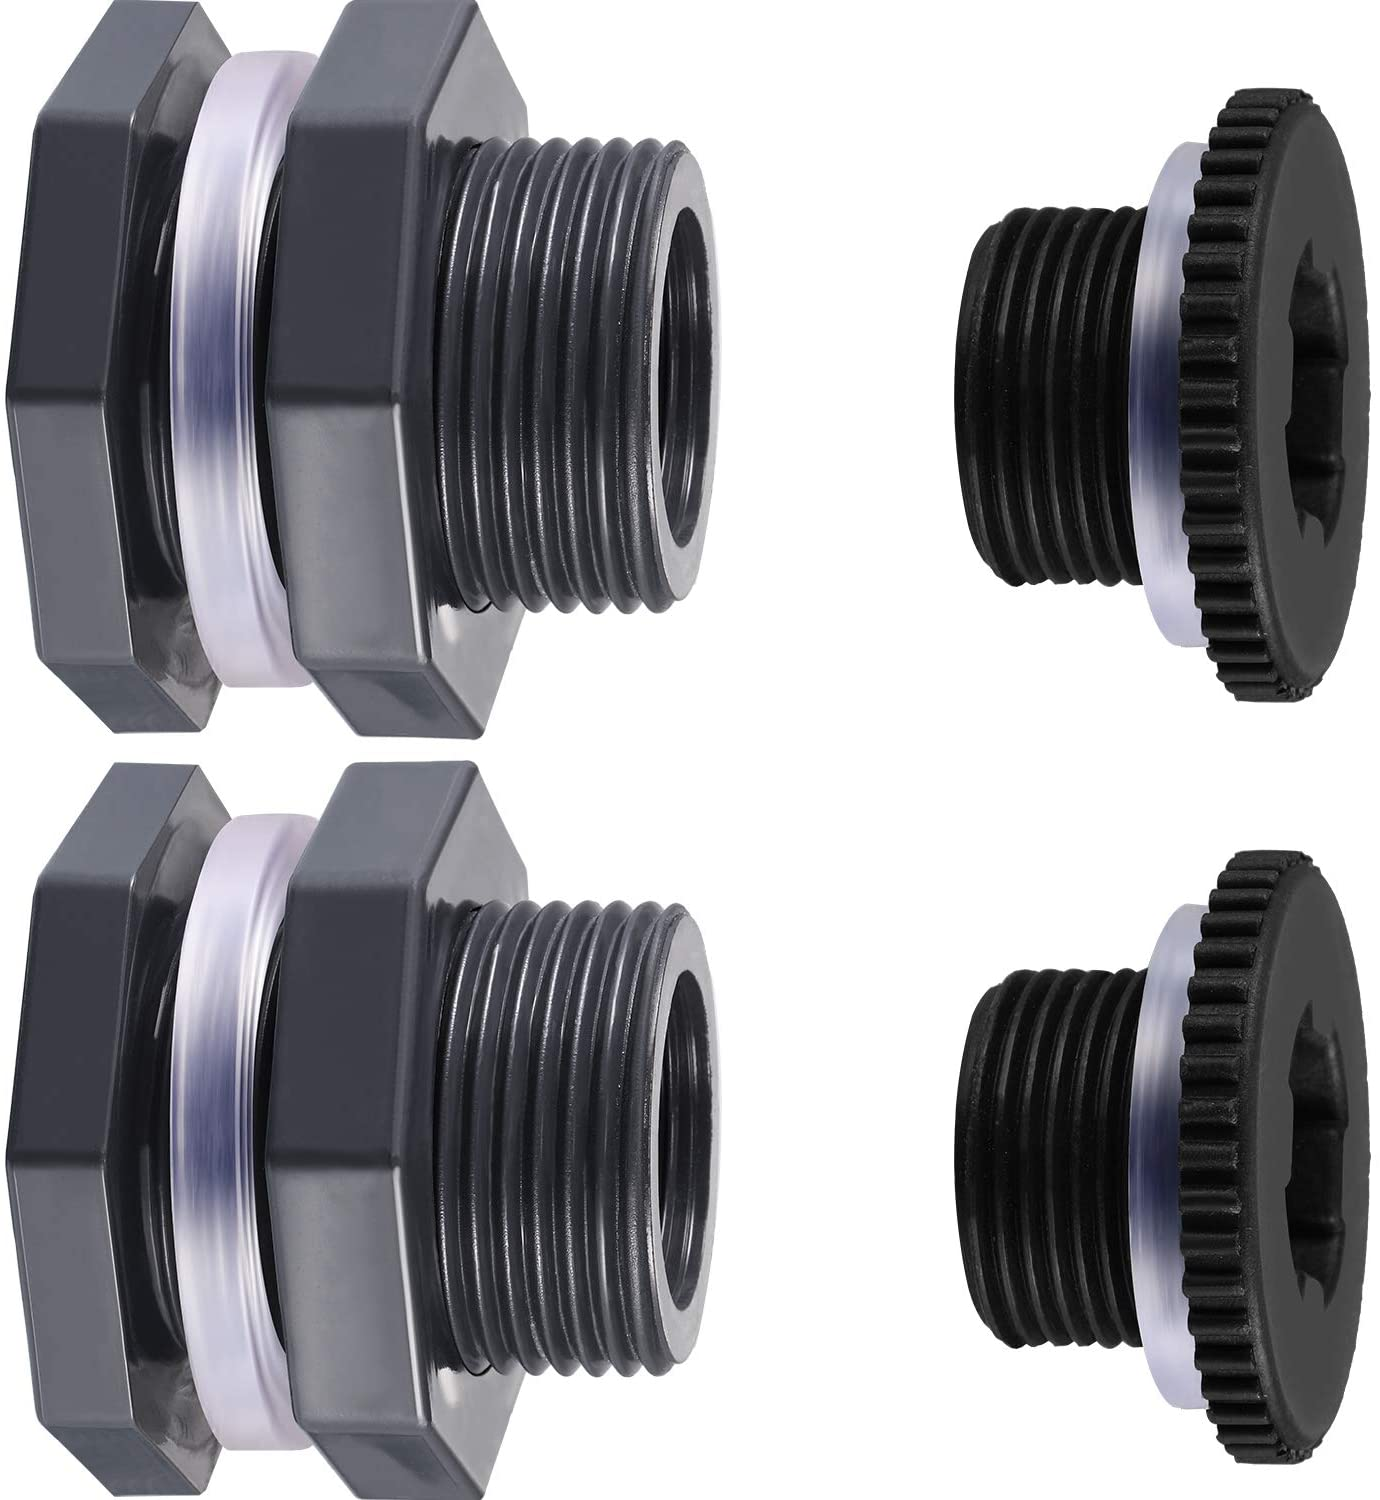 Color : NO.1 Pipes /& Hoses 3pcs PVC Tank Drainage Ball Valve Pipe Fitting UPVC Pipe Connector For Aquarium Fish Tank Garden Landscape Water Tank With Drainage Tubes